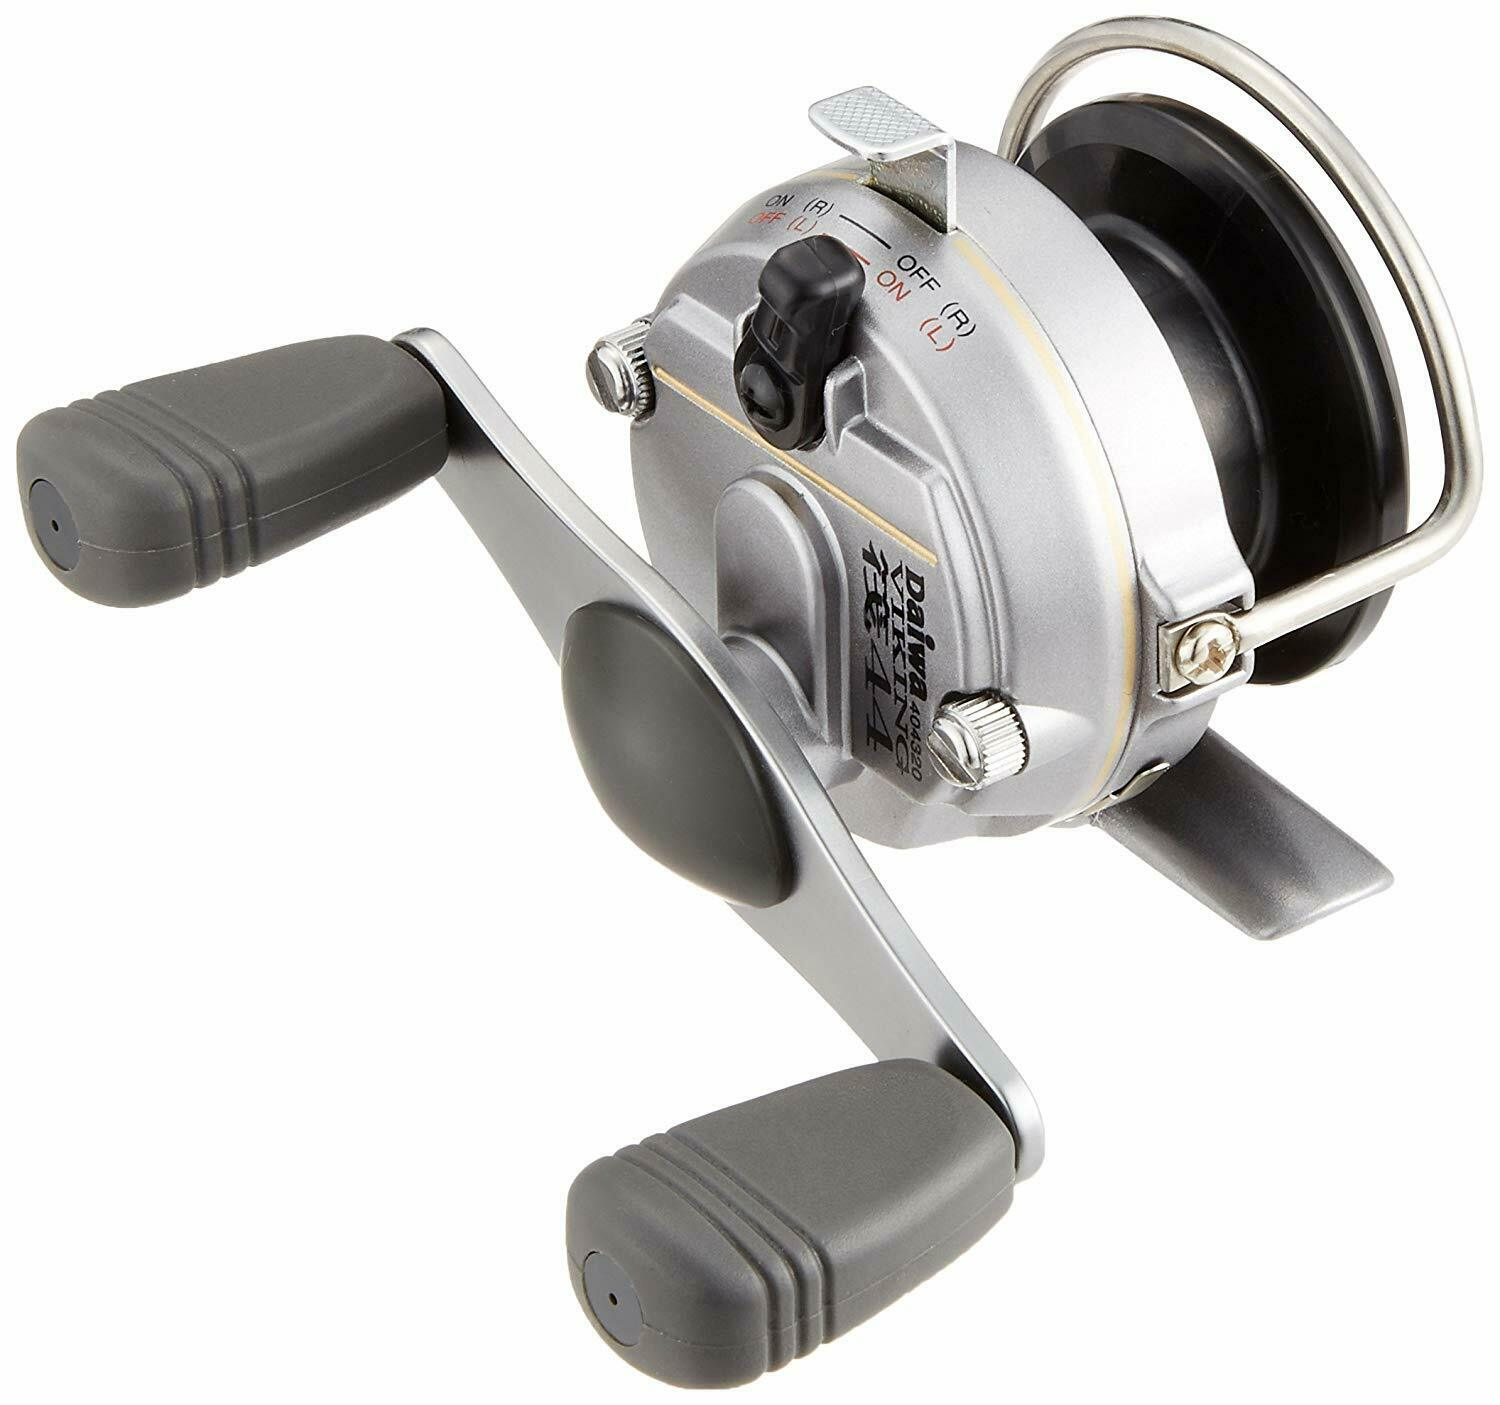 Daiwa Viking Raft 44 spinning reel New Worldwide shipping from Japan